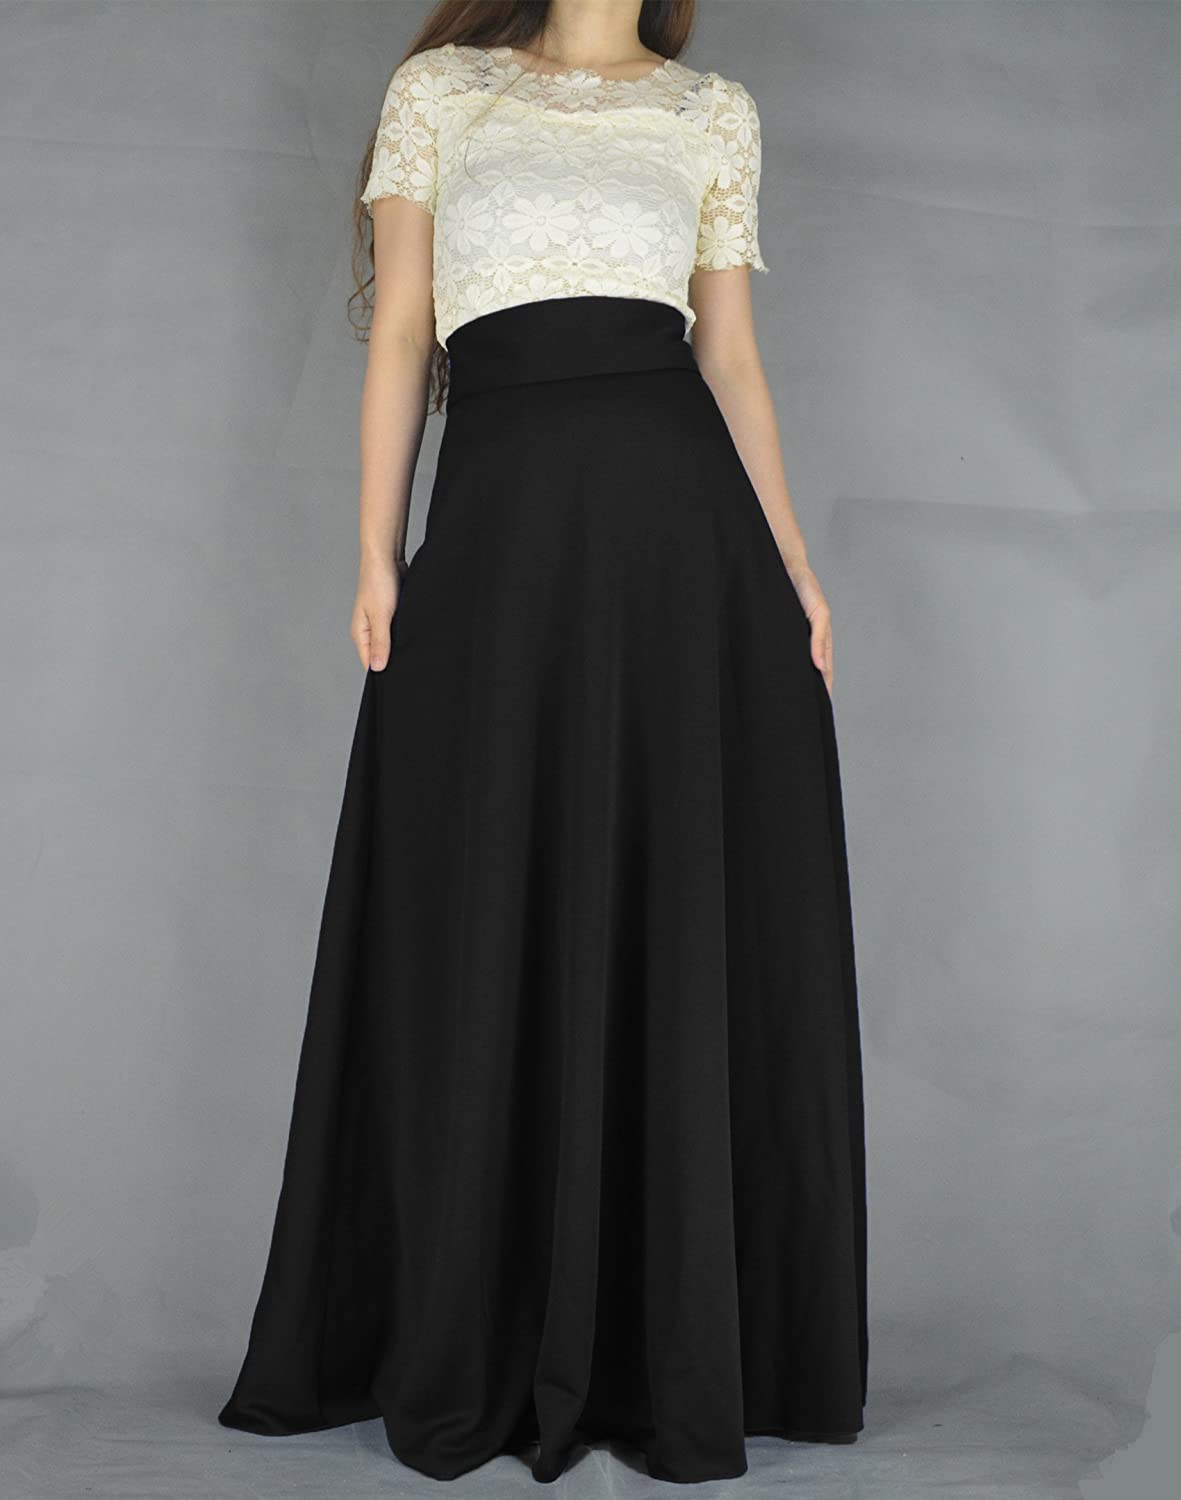 1900-1910s Clothing YSJ Womens High Waist A-Line Pleated Solid Vintage Swing Maxi Skirts Midi Skirt Party $31.99 AT vintagedancer.com